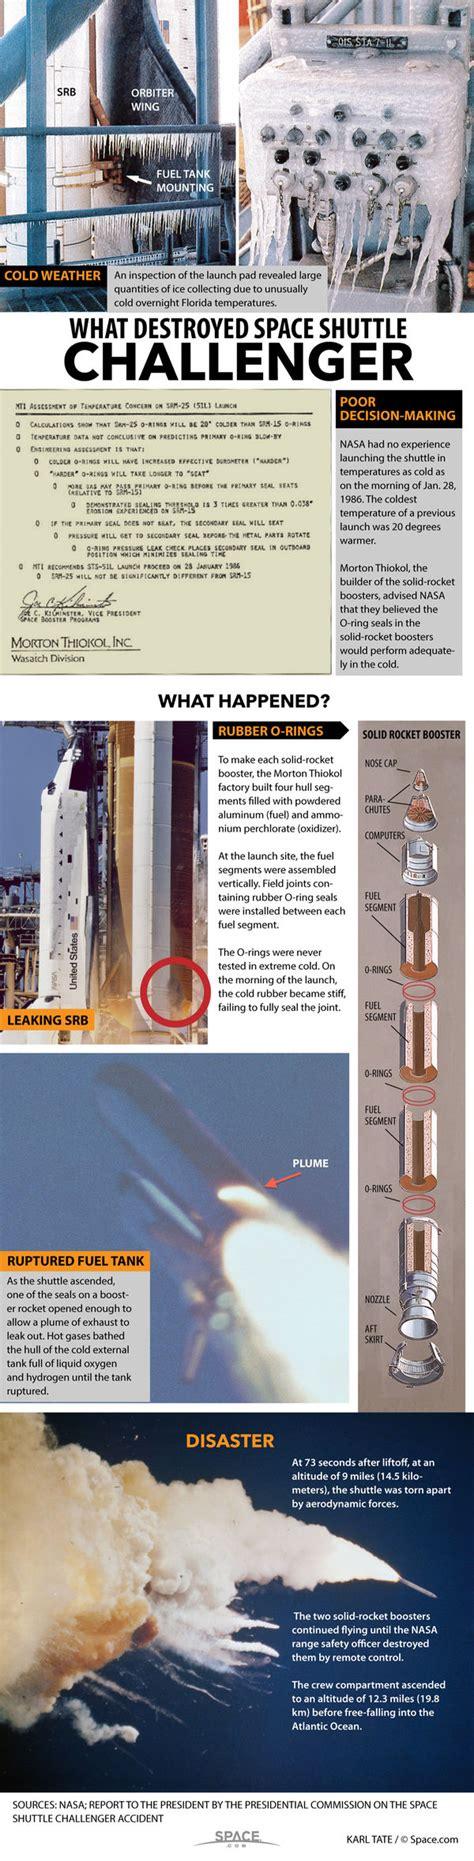 the challenger launch the space shuttle challenger disaster what happened